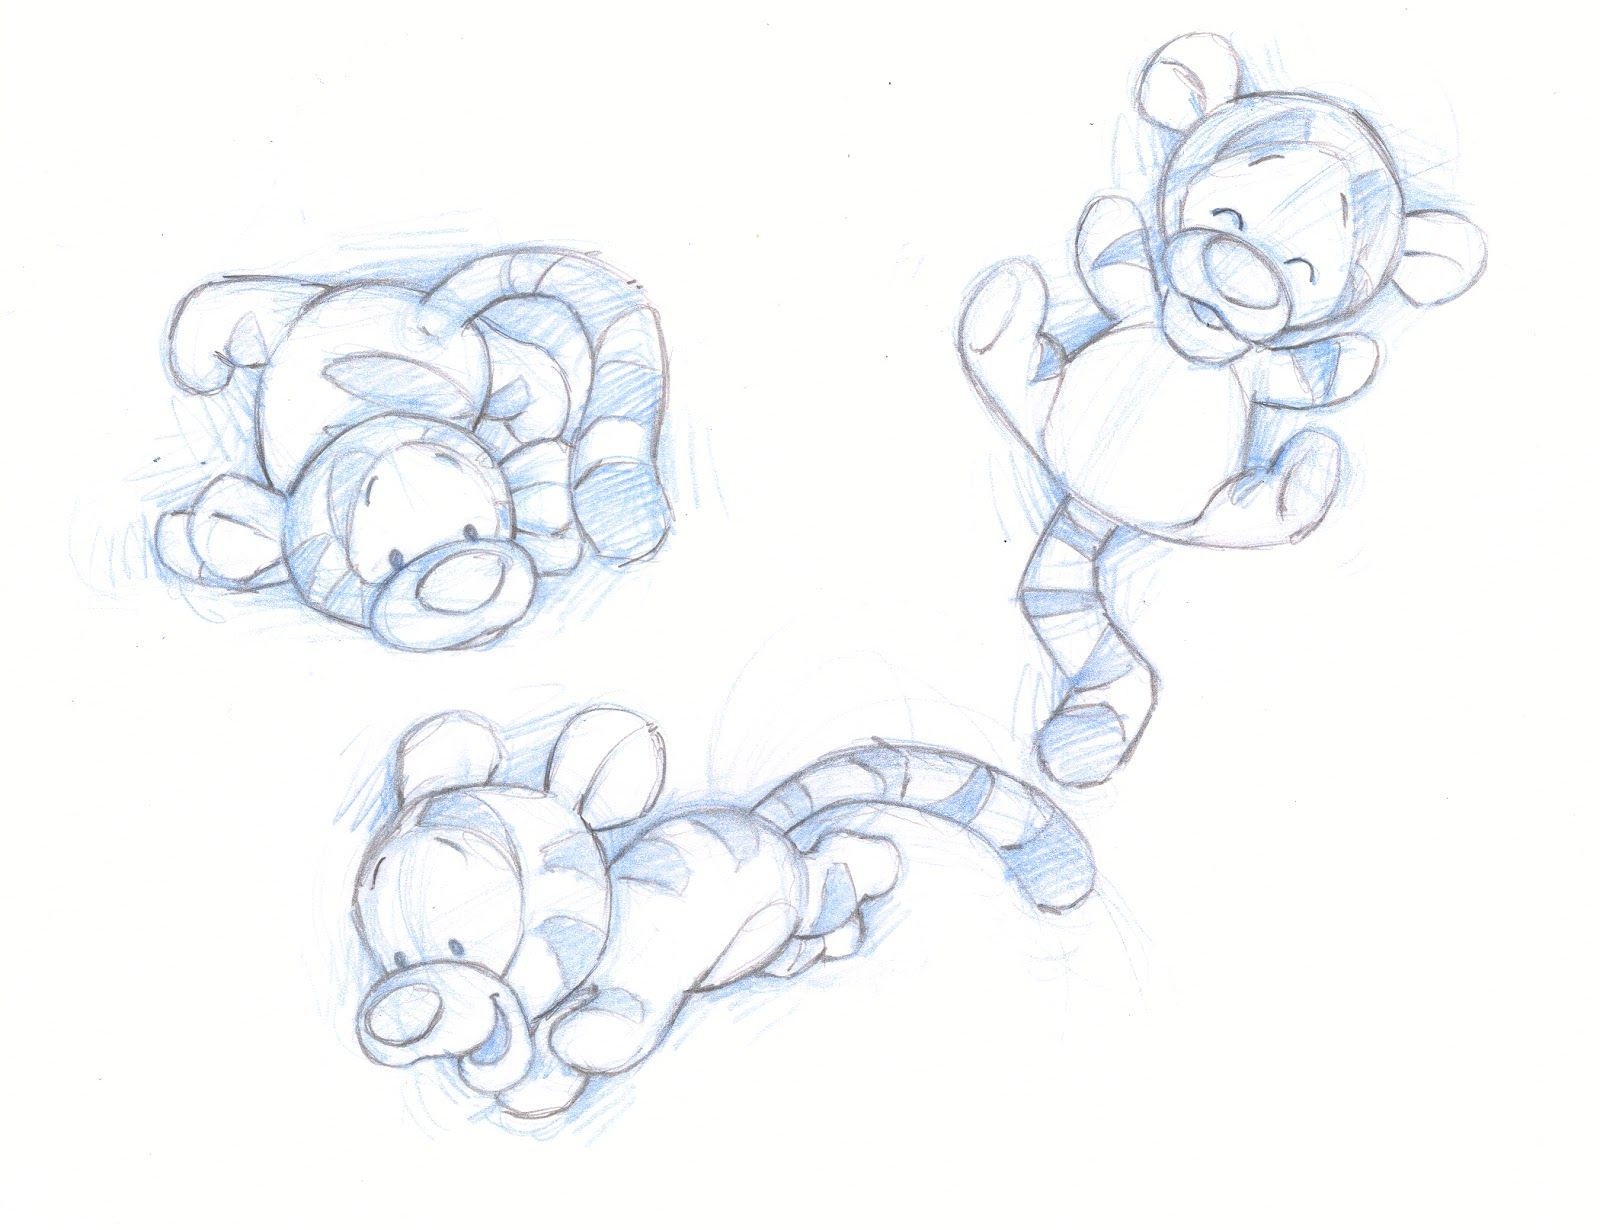 Shane Made Art: Baby Pooh and friends sketches | Drawings ...